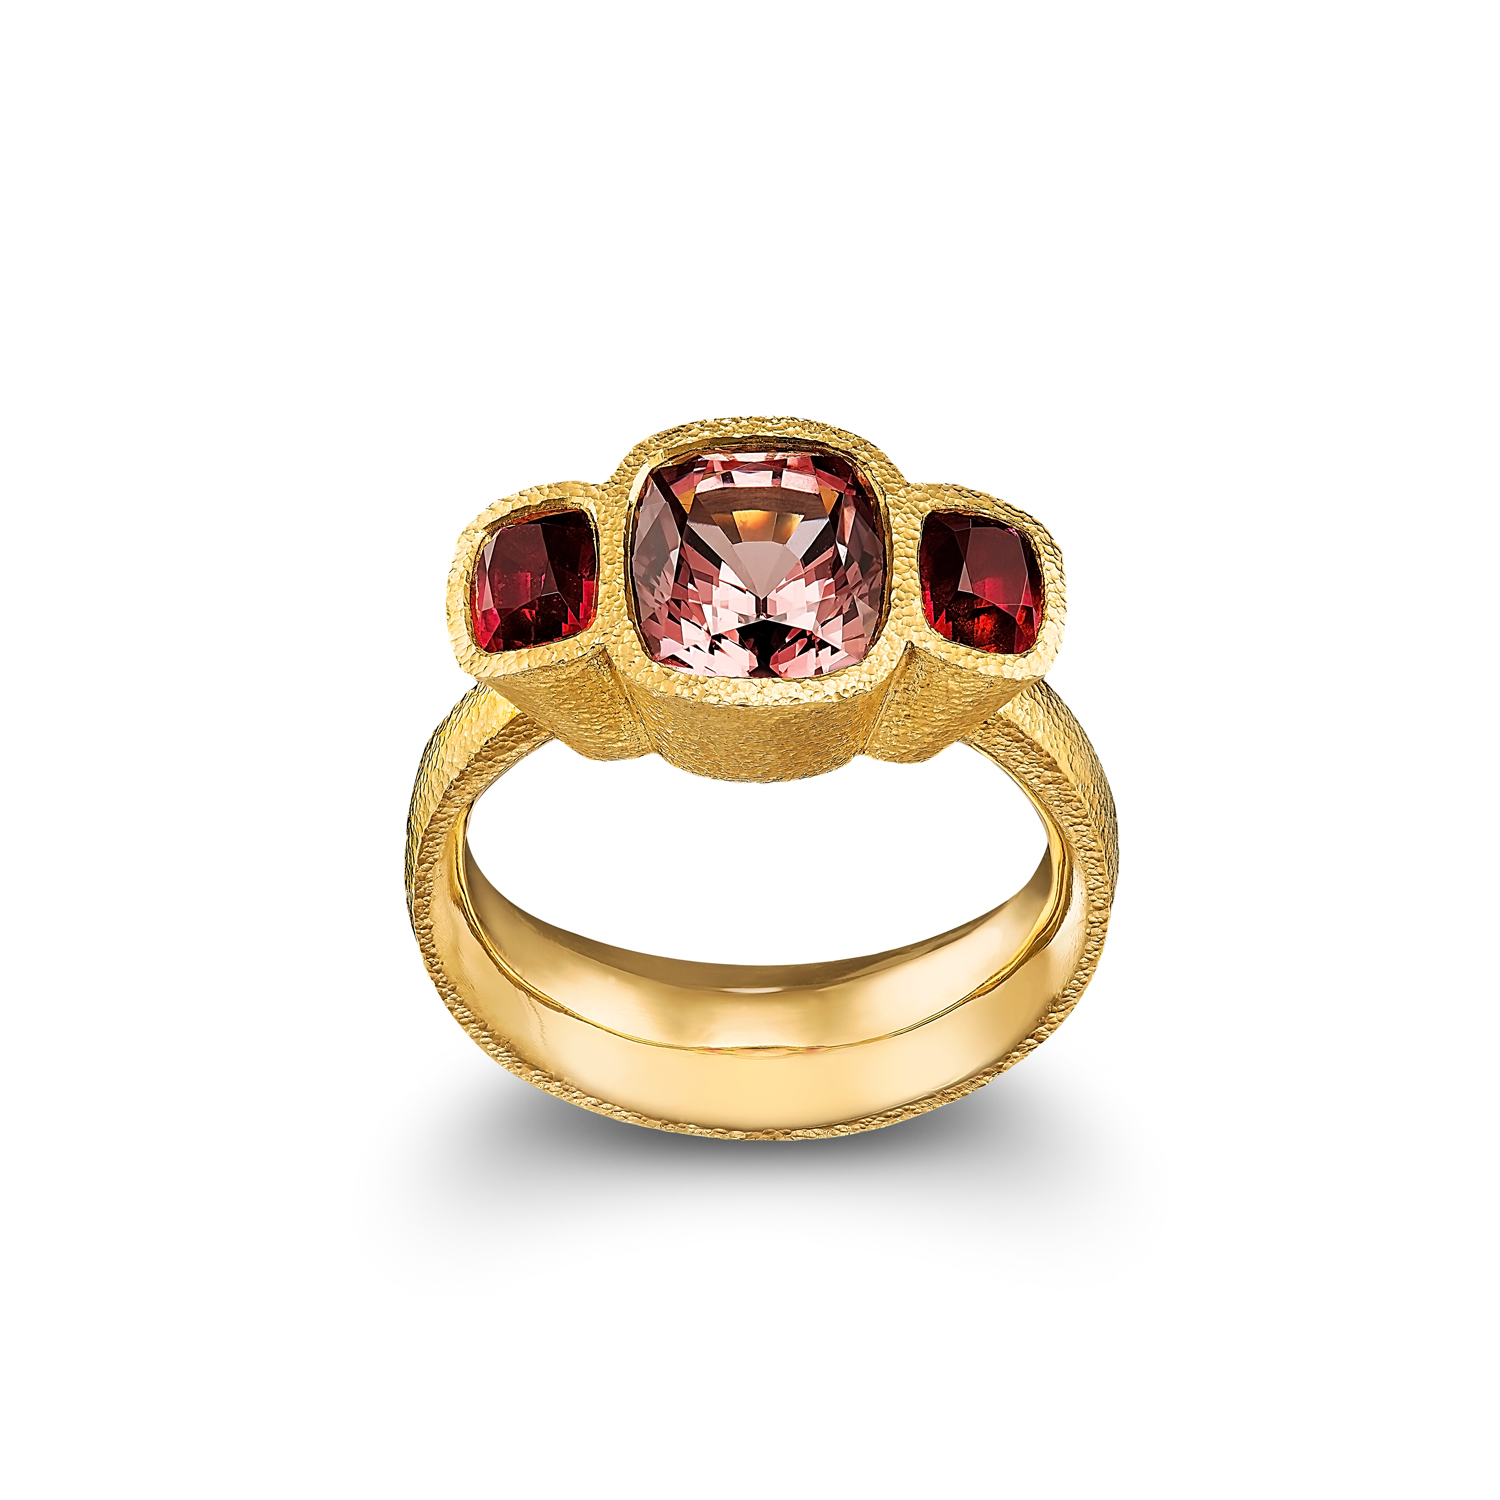 Cognac Spinel Ring